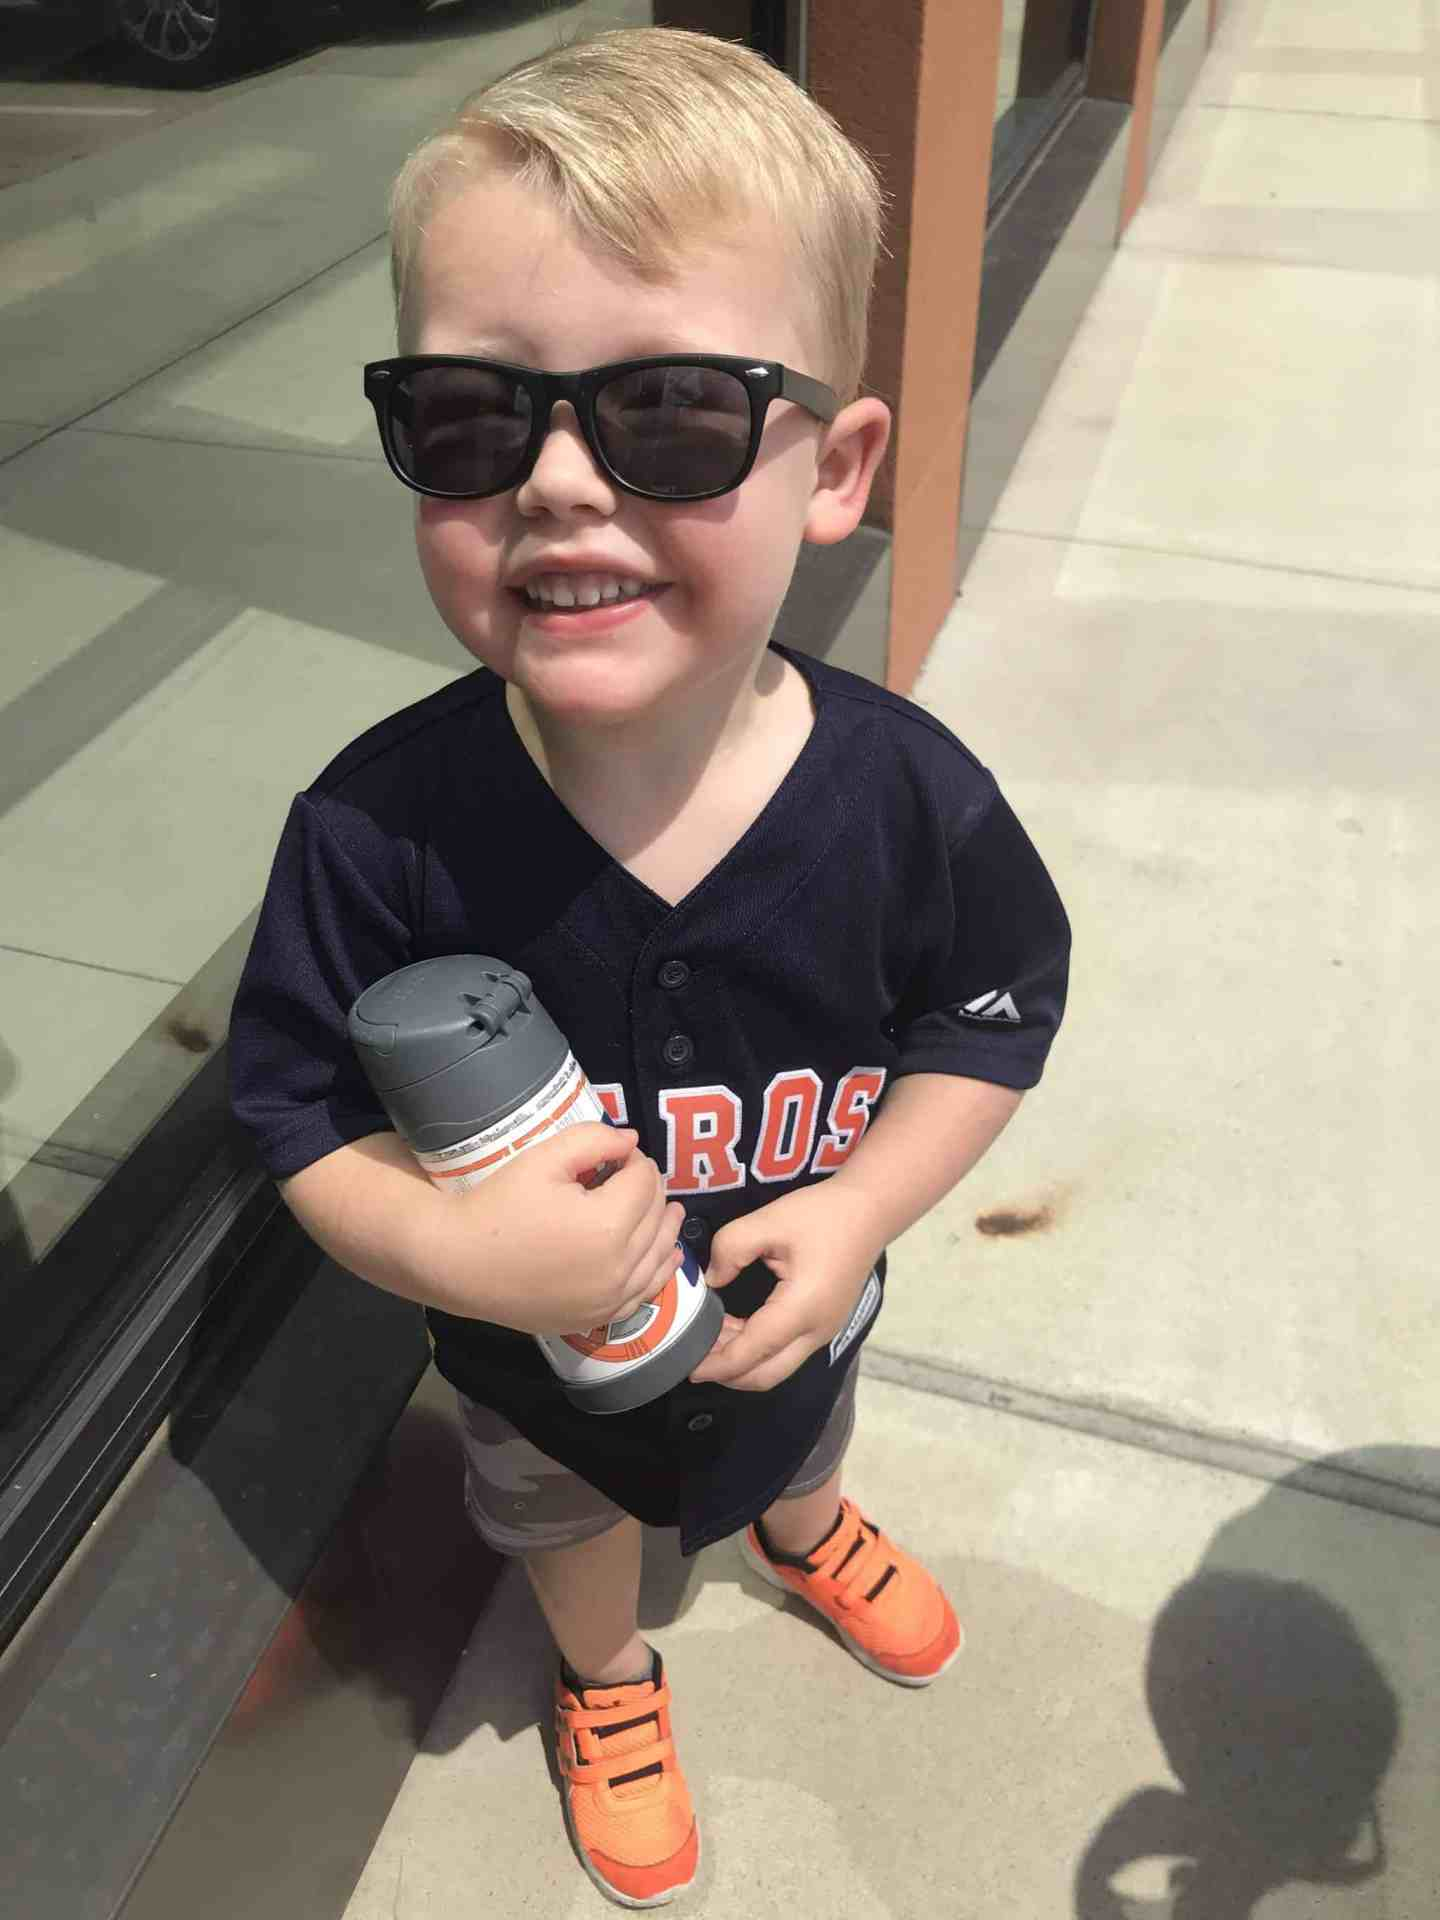 Toddler and Kid Sunglasses UVB Protection